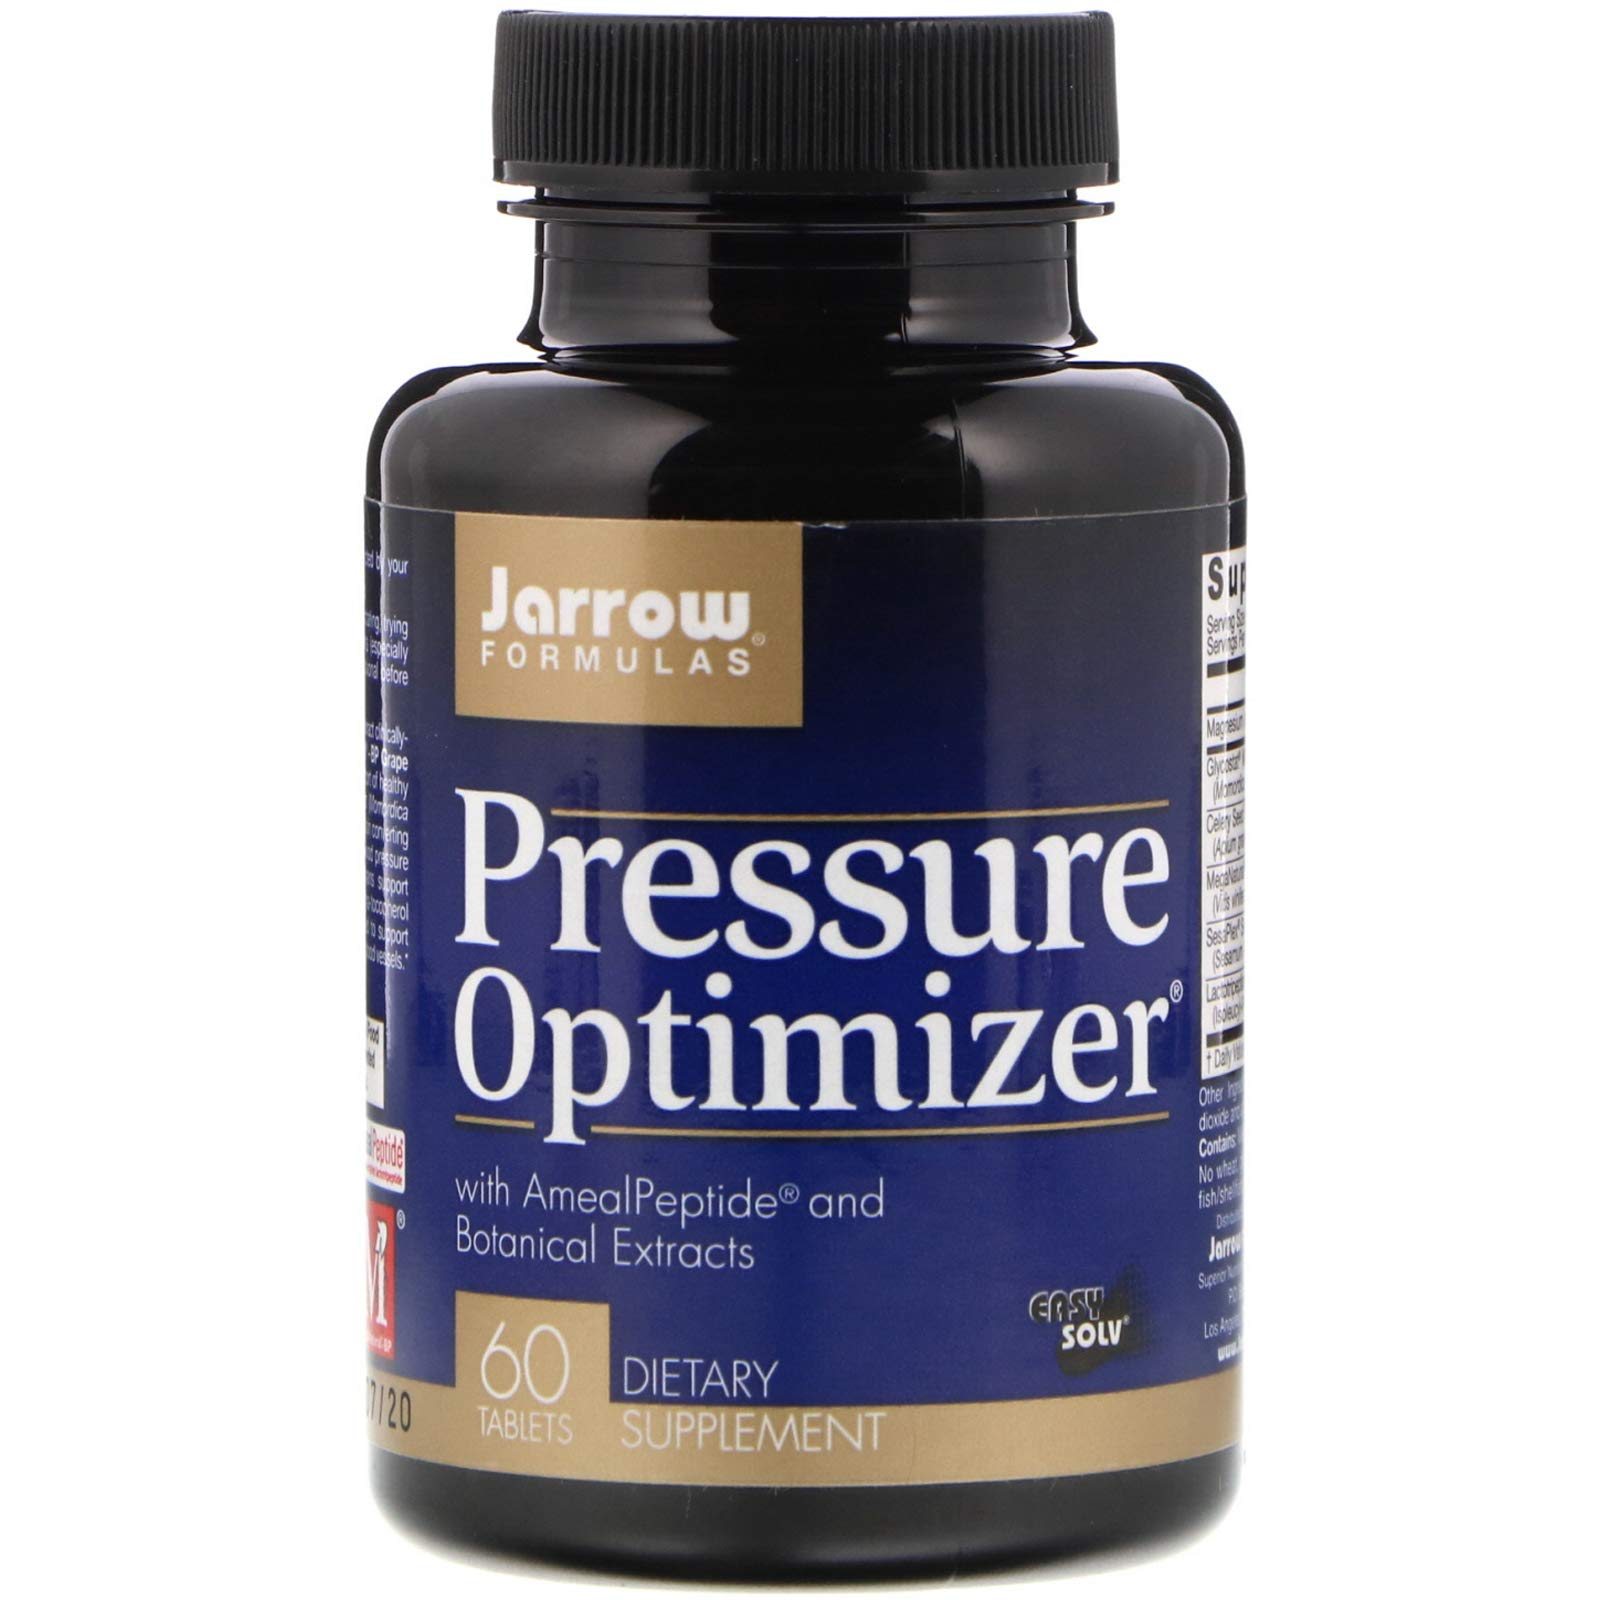 Jarrow Formulas, Pressure Optimizer, 60 Tablets by J.Formula Supplements (Image #1)